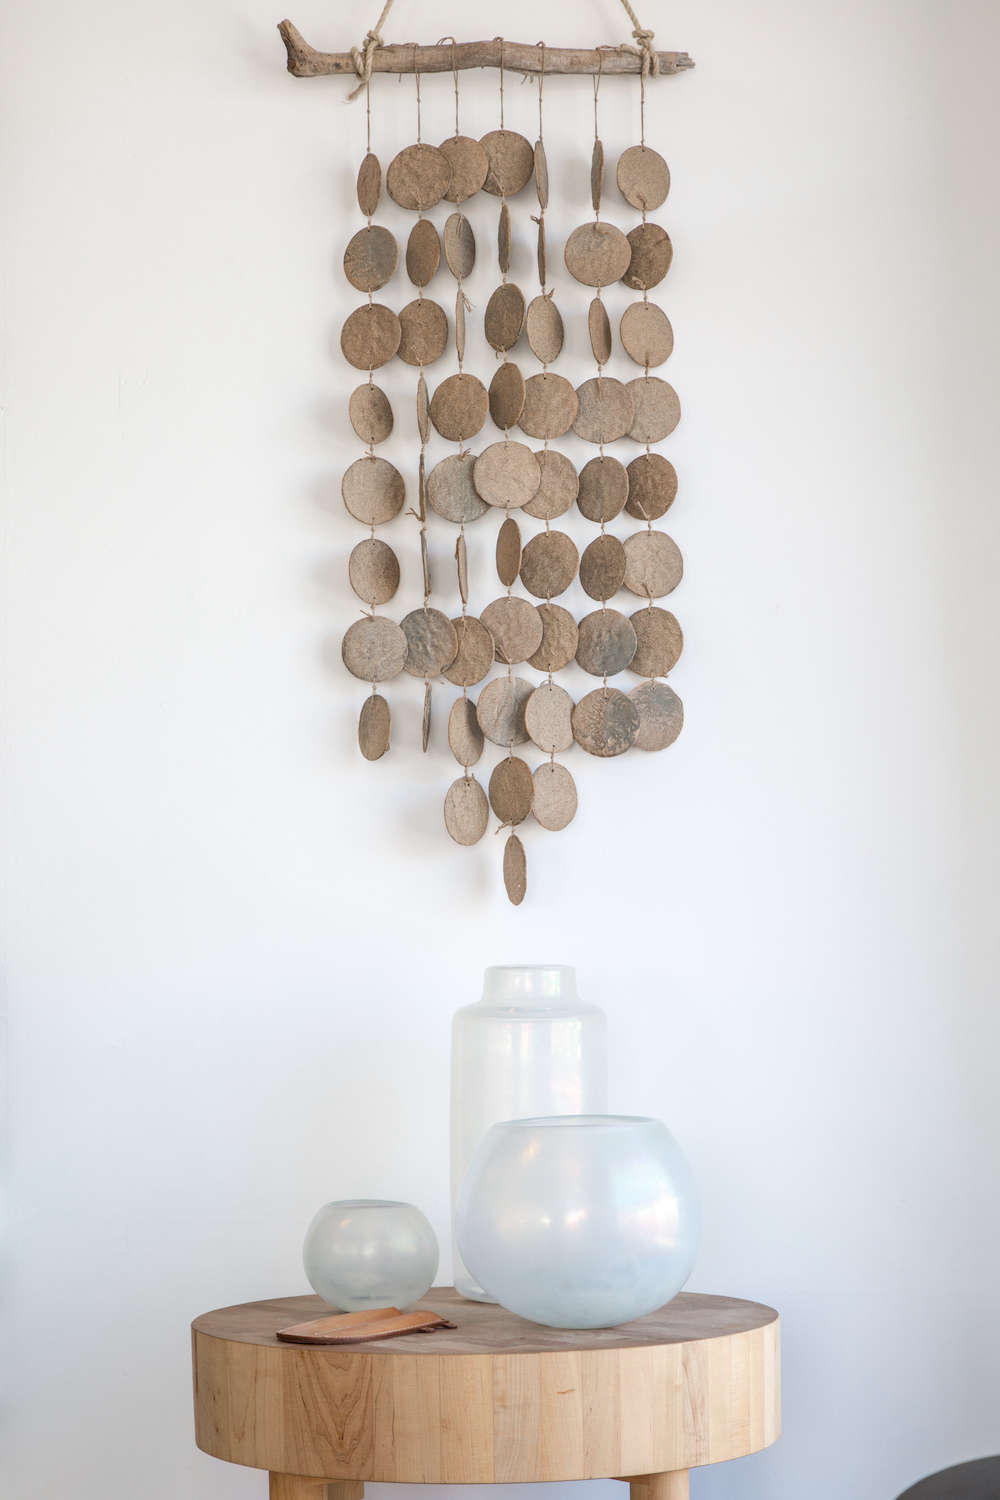 Ceramic mobile on white wall with hand-blown glass vases